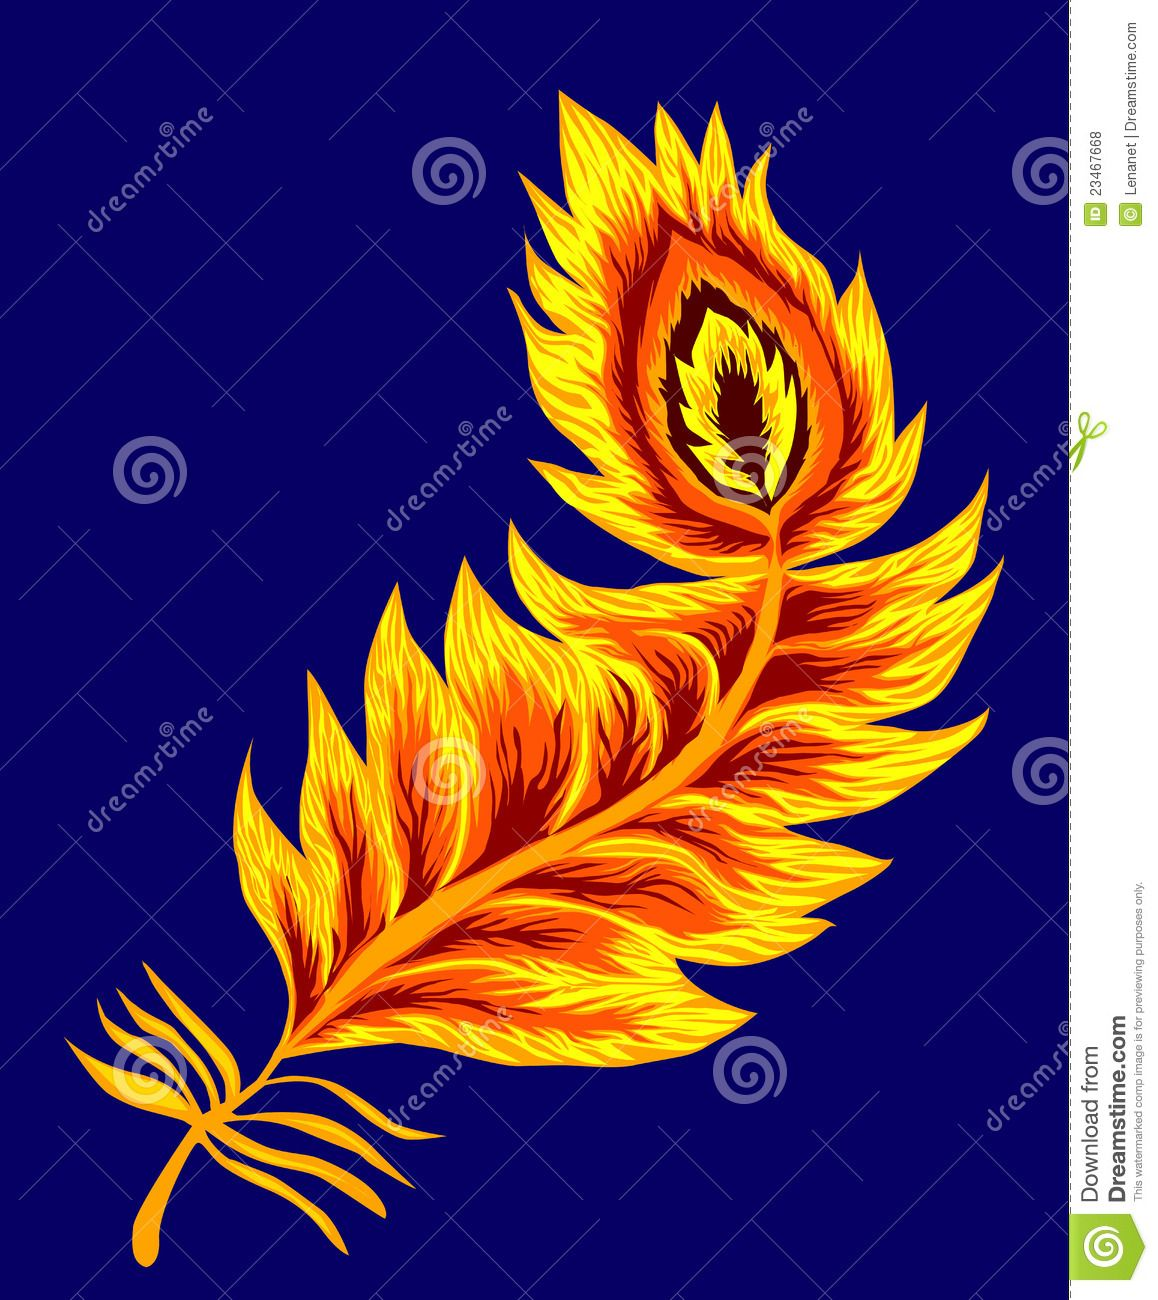 http://thumbs.dreamstime.com/z/phoenix-feather-23467668.jpg